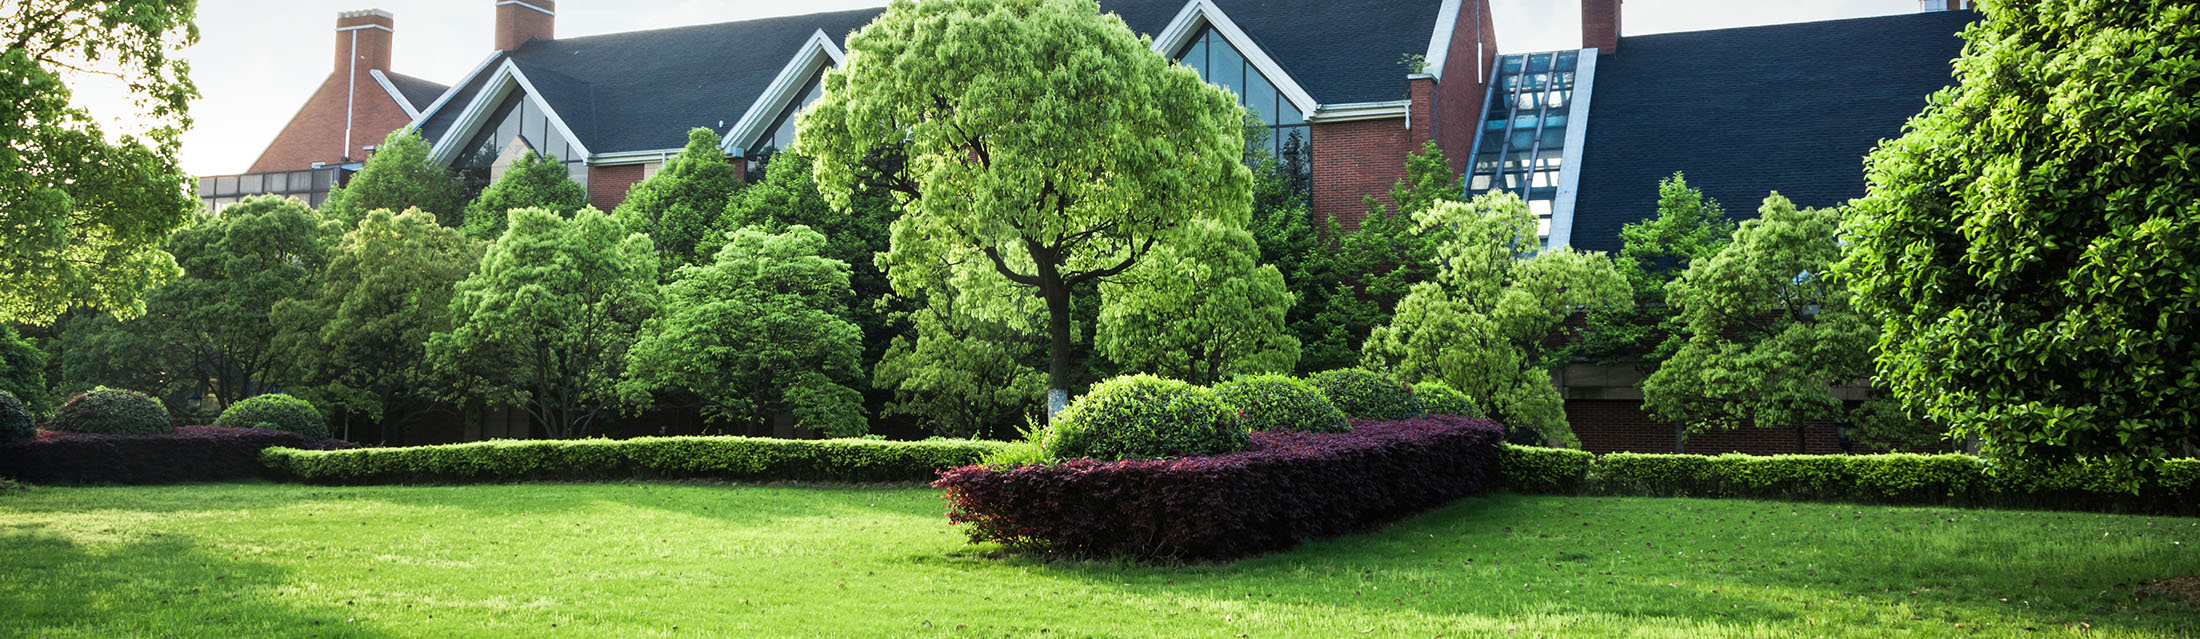 Landscaping Services Ozark MO